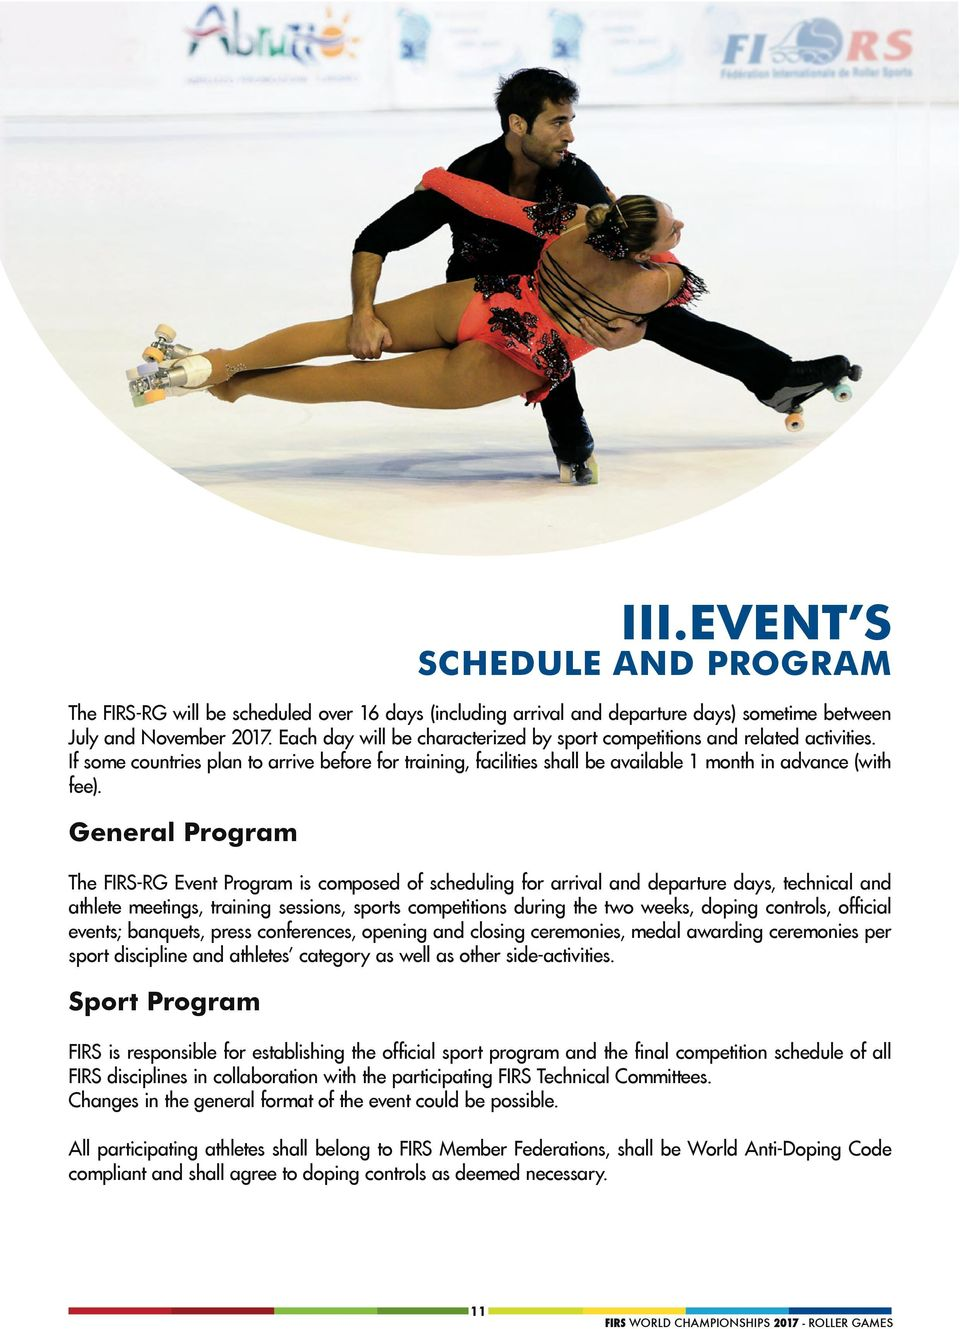 General Program The FIRS-RG Event Program is composed of scheduling for arrival and departure days, technical and athlete meetings, training sessions, sports competitions during the two weeks, doping